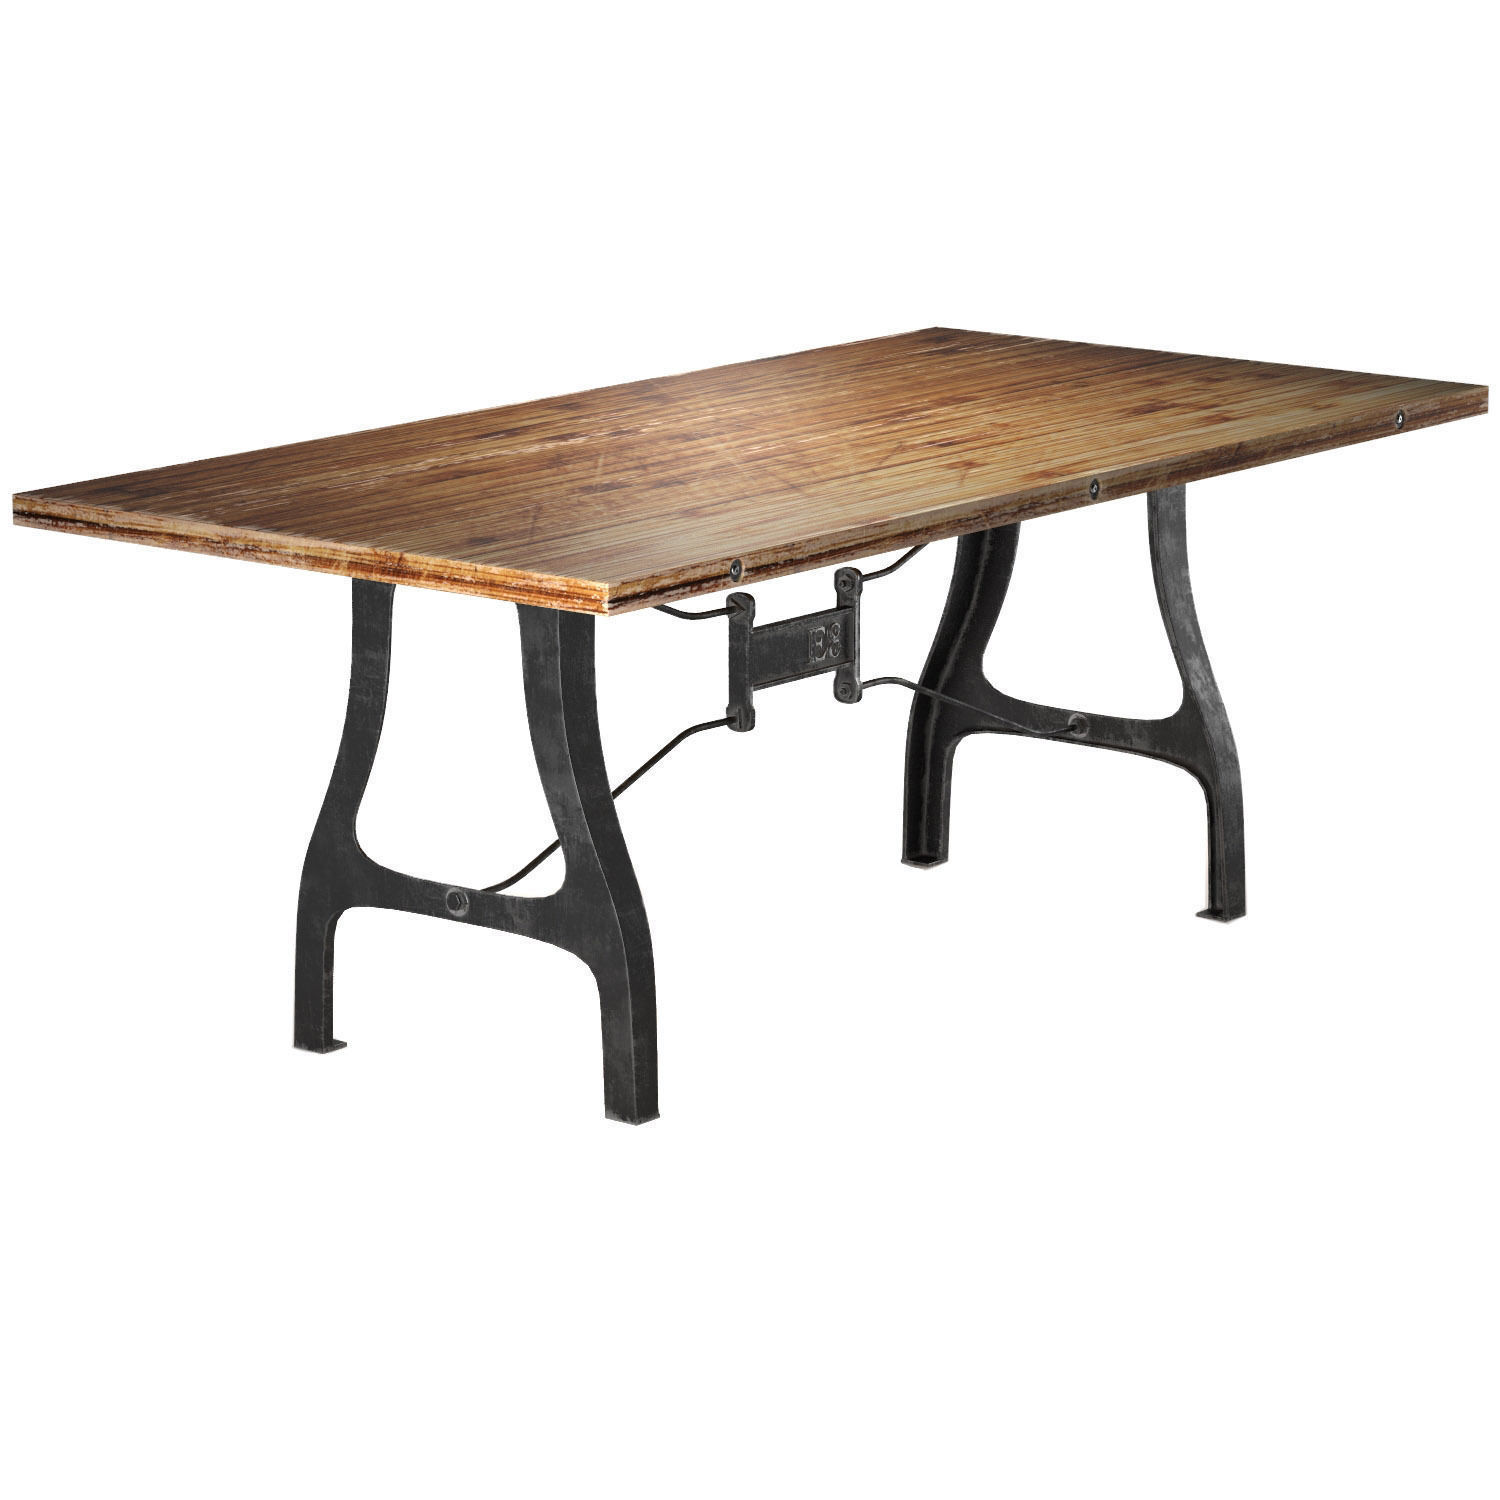 Nuevo V4 A Leg Small Dining Table with Reclaimed Wood Top 3D model MAX